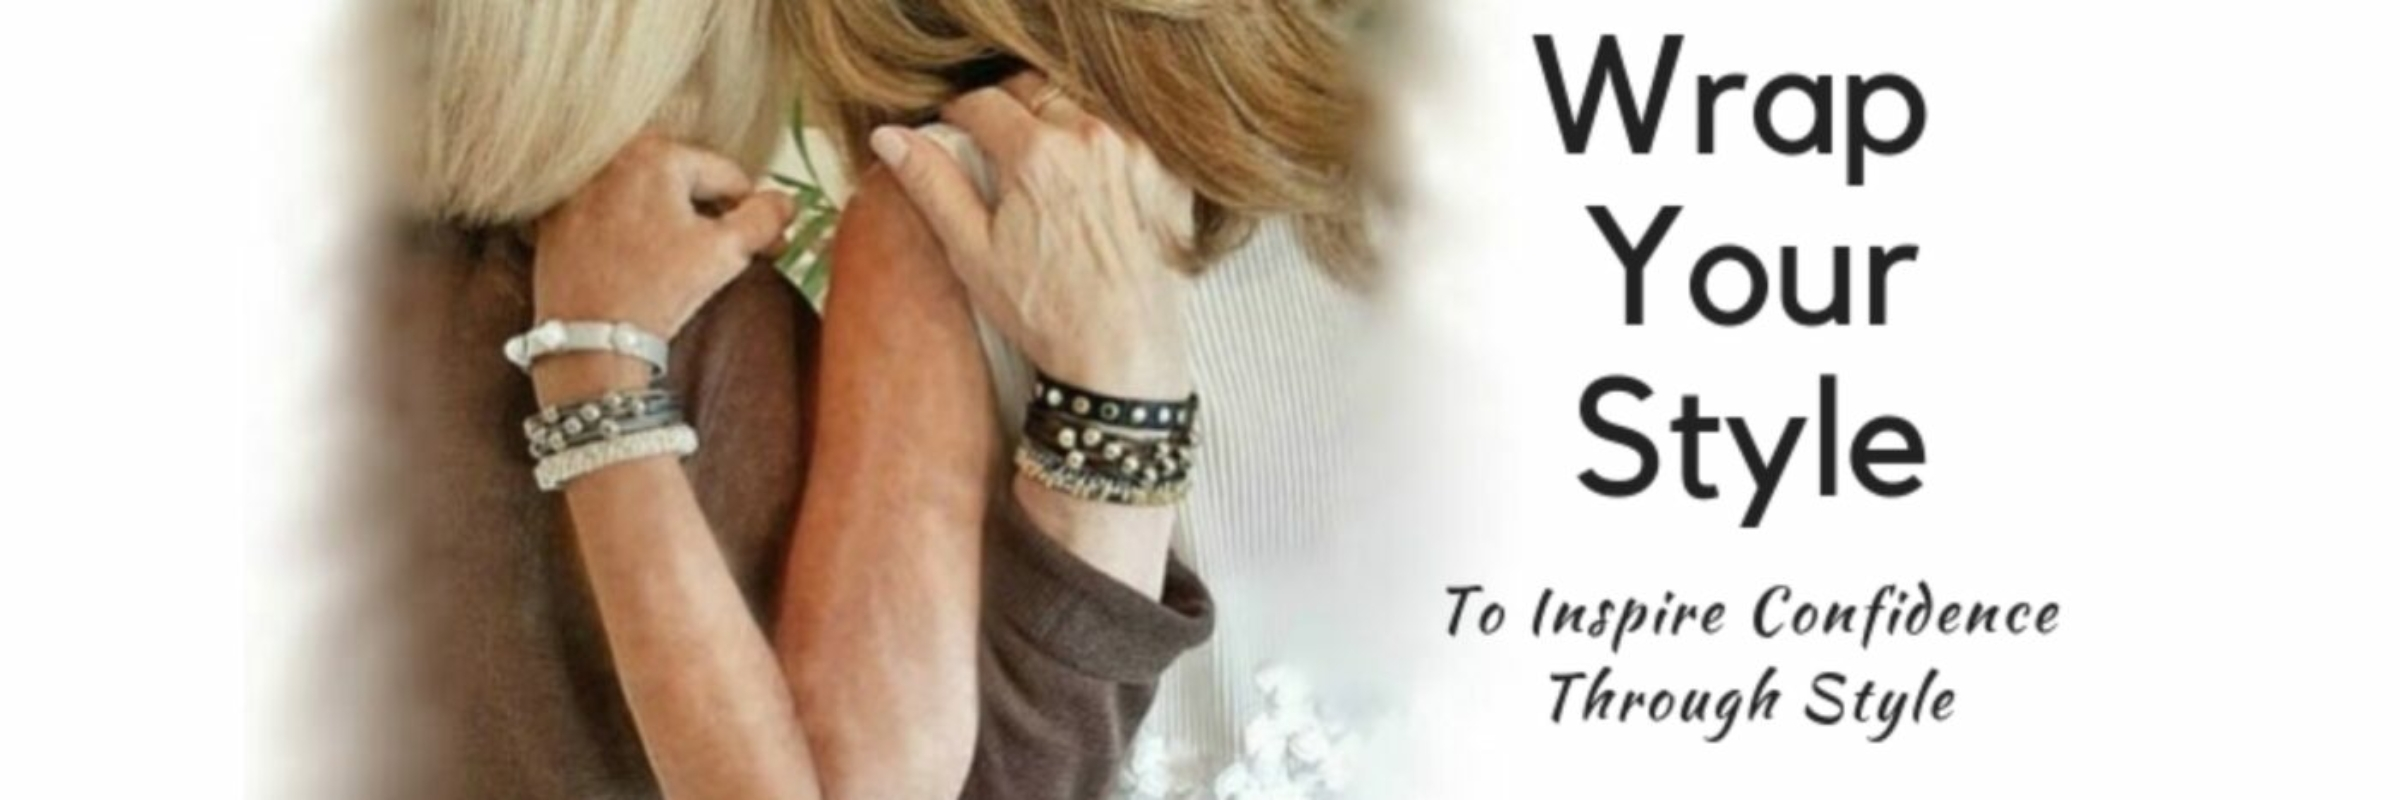 Wrap-Your-Style-new-slider-6-19-2400x800